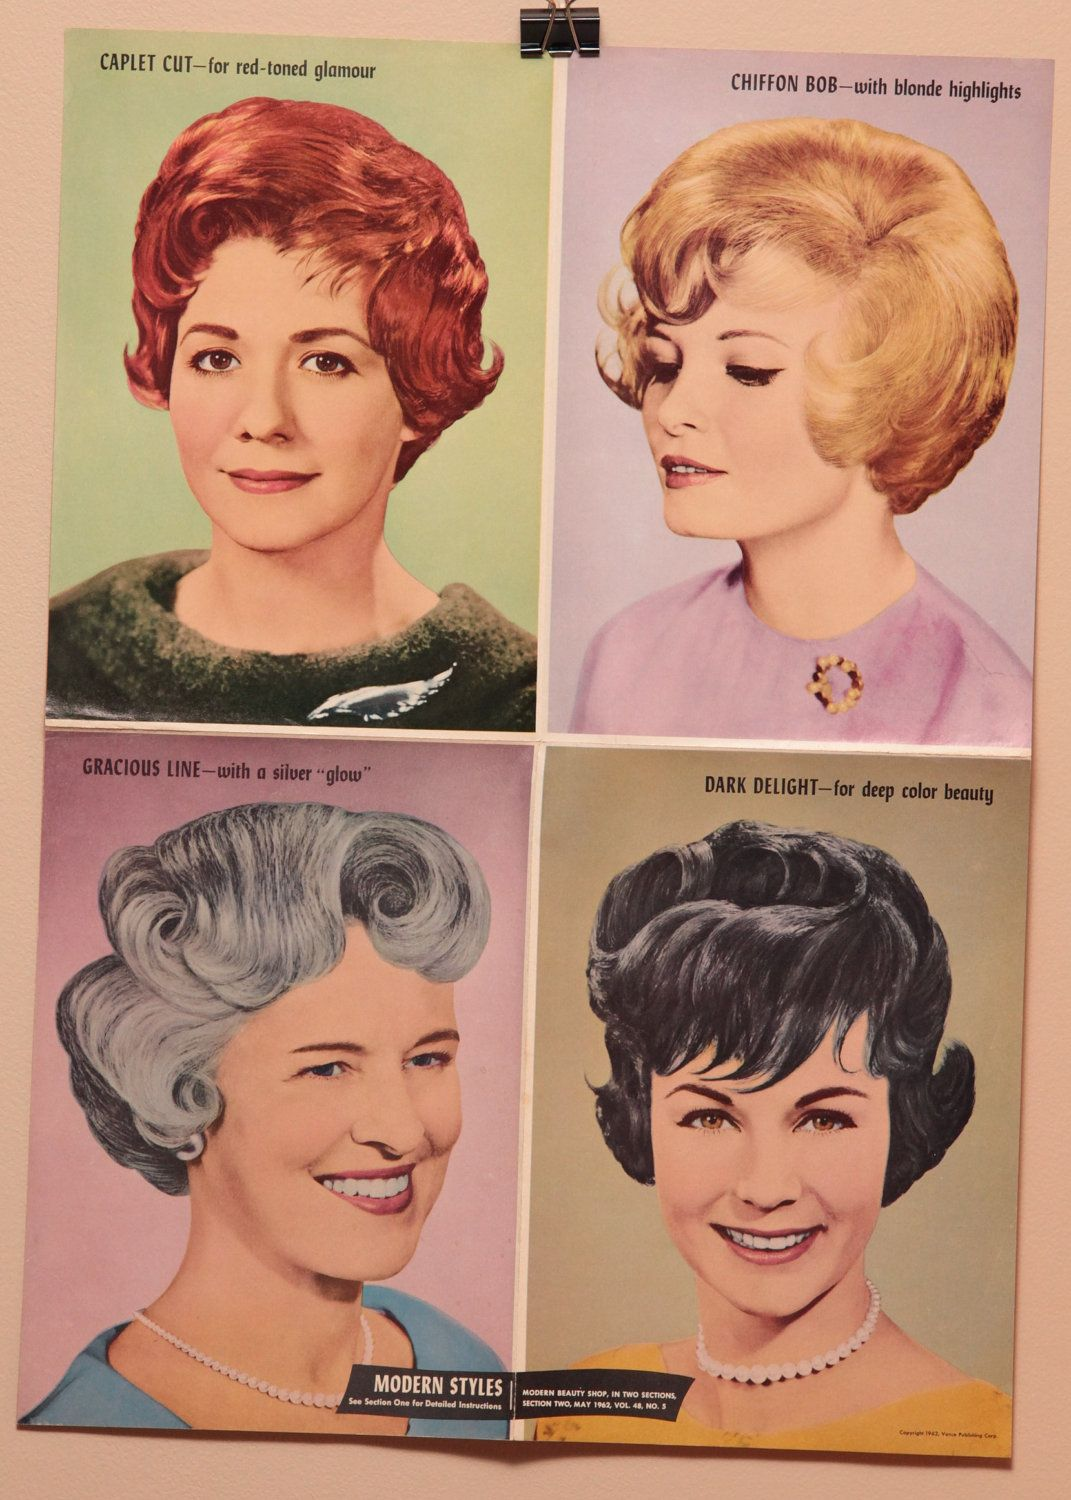 vintage hair salon poster, 16x22, 1960s | archives coiffure